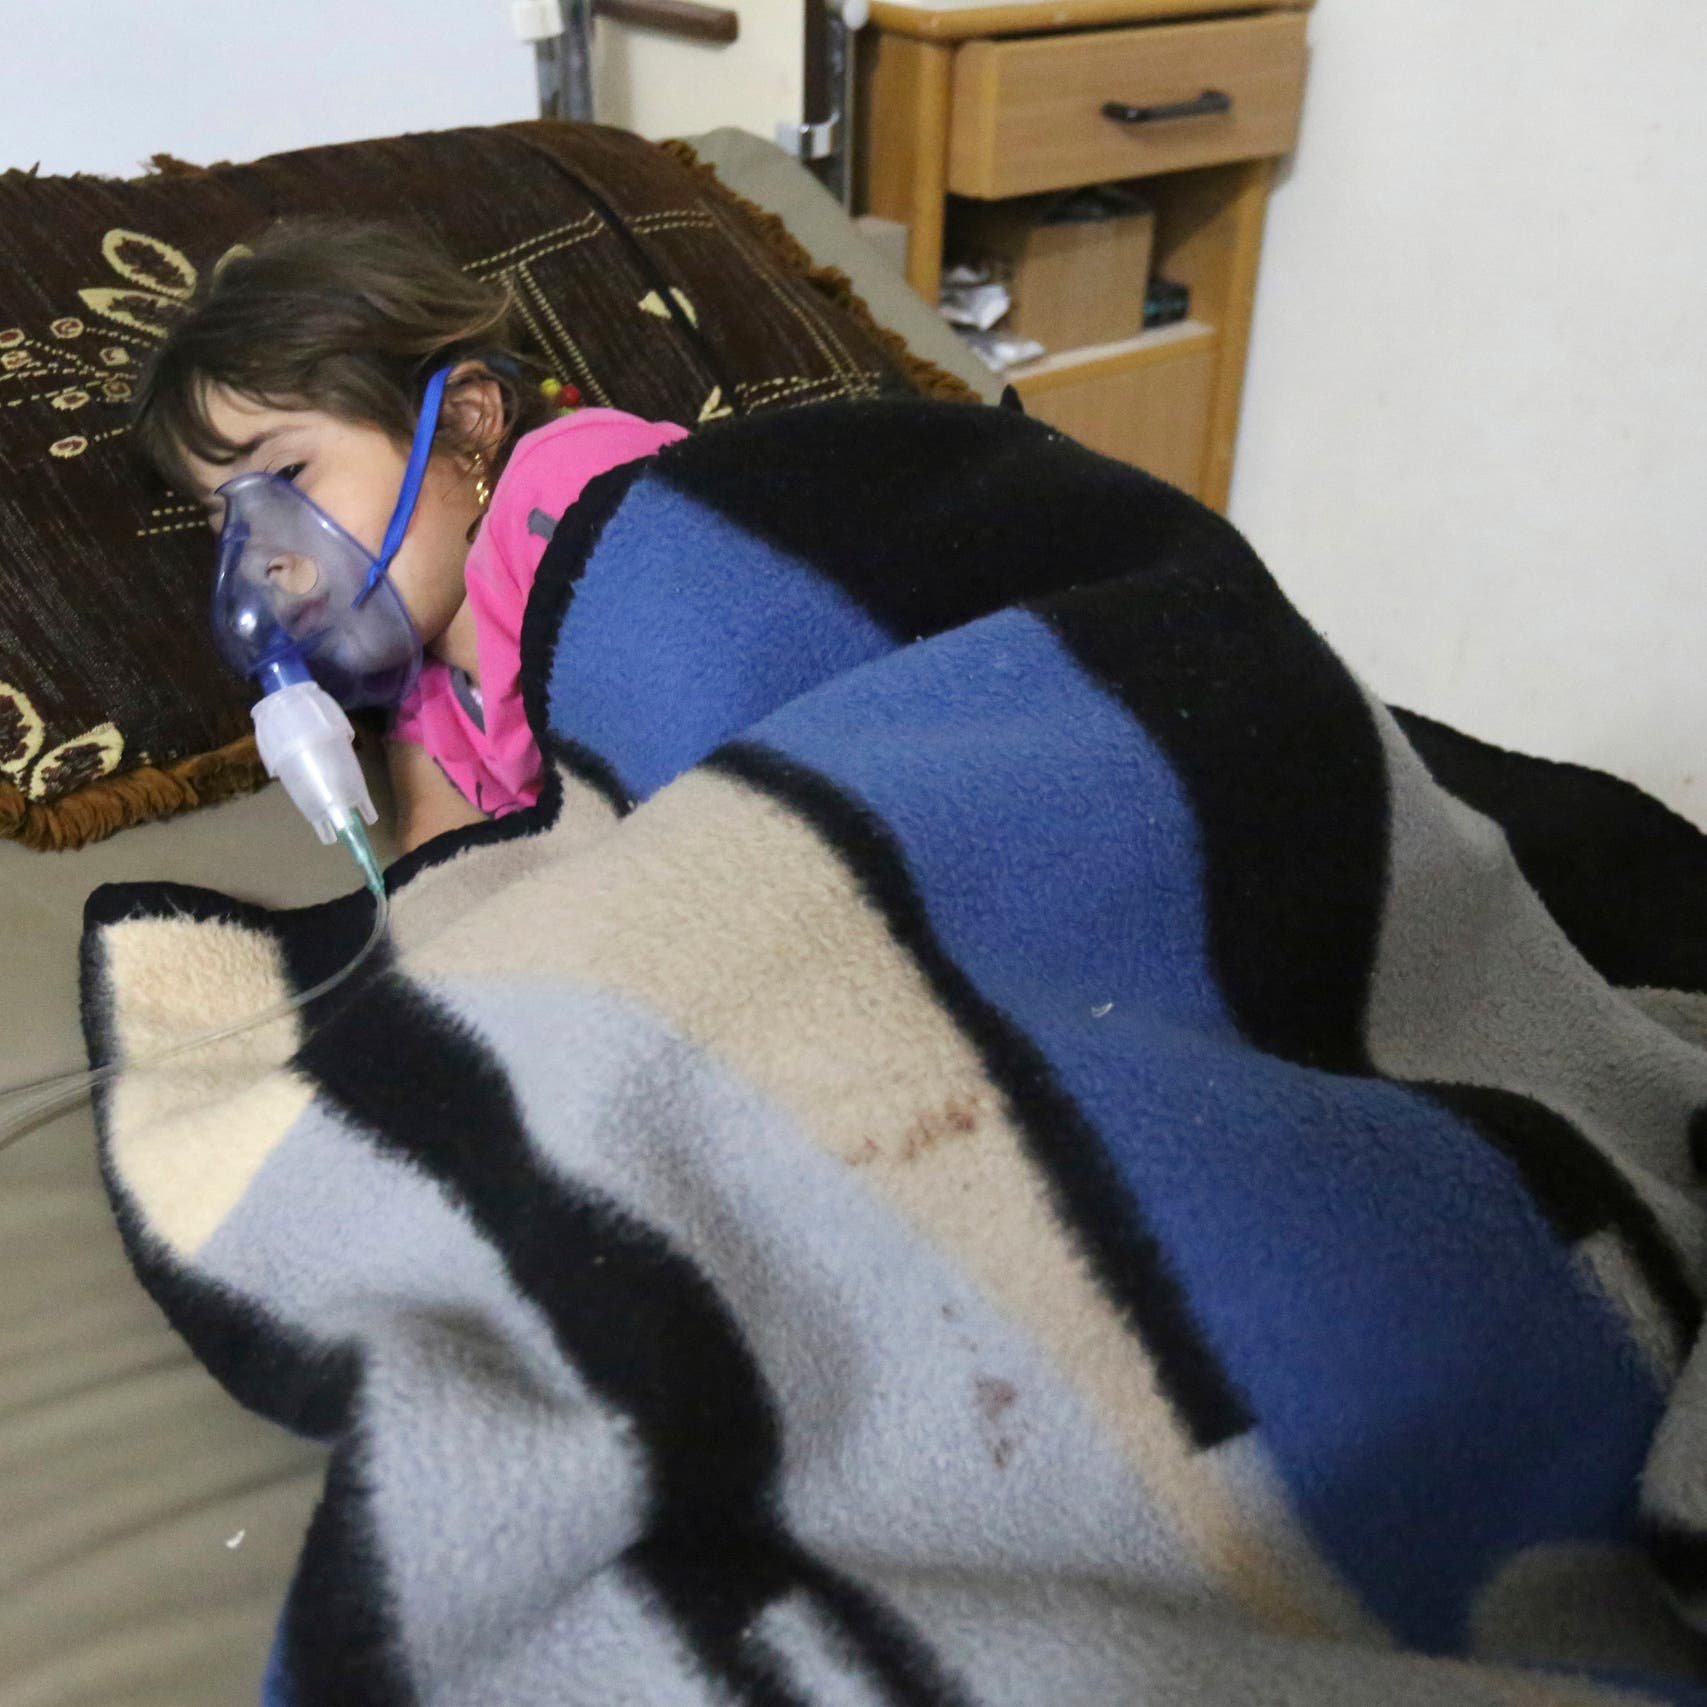 Chemical weapons body condemns Syria for using sarin, chlorine on village in Hama